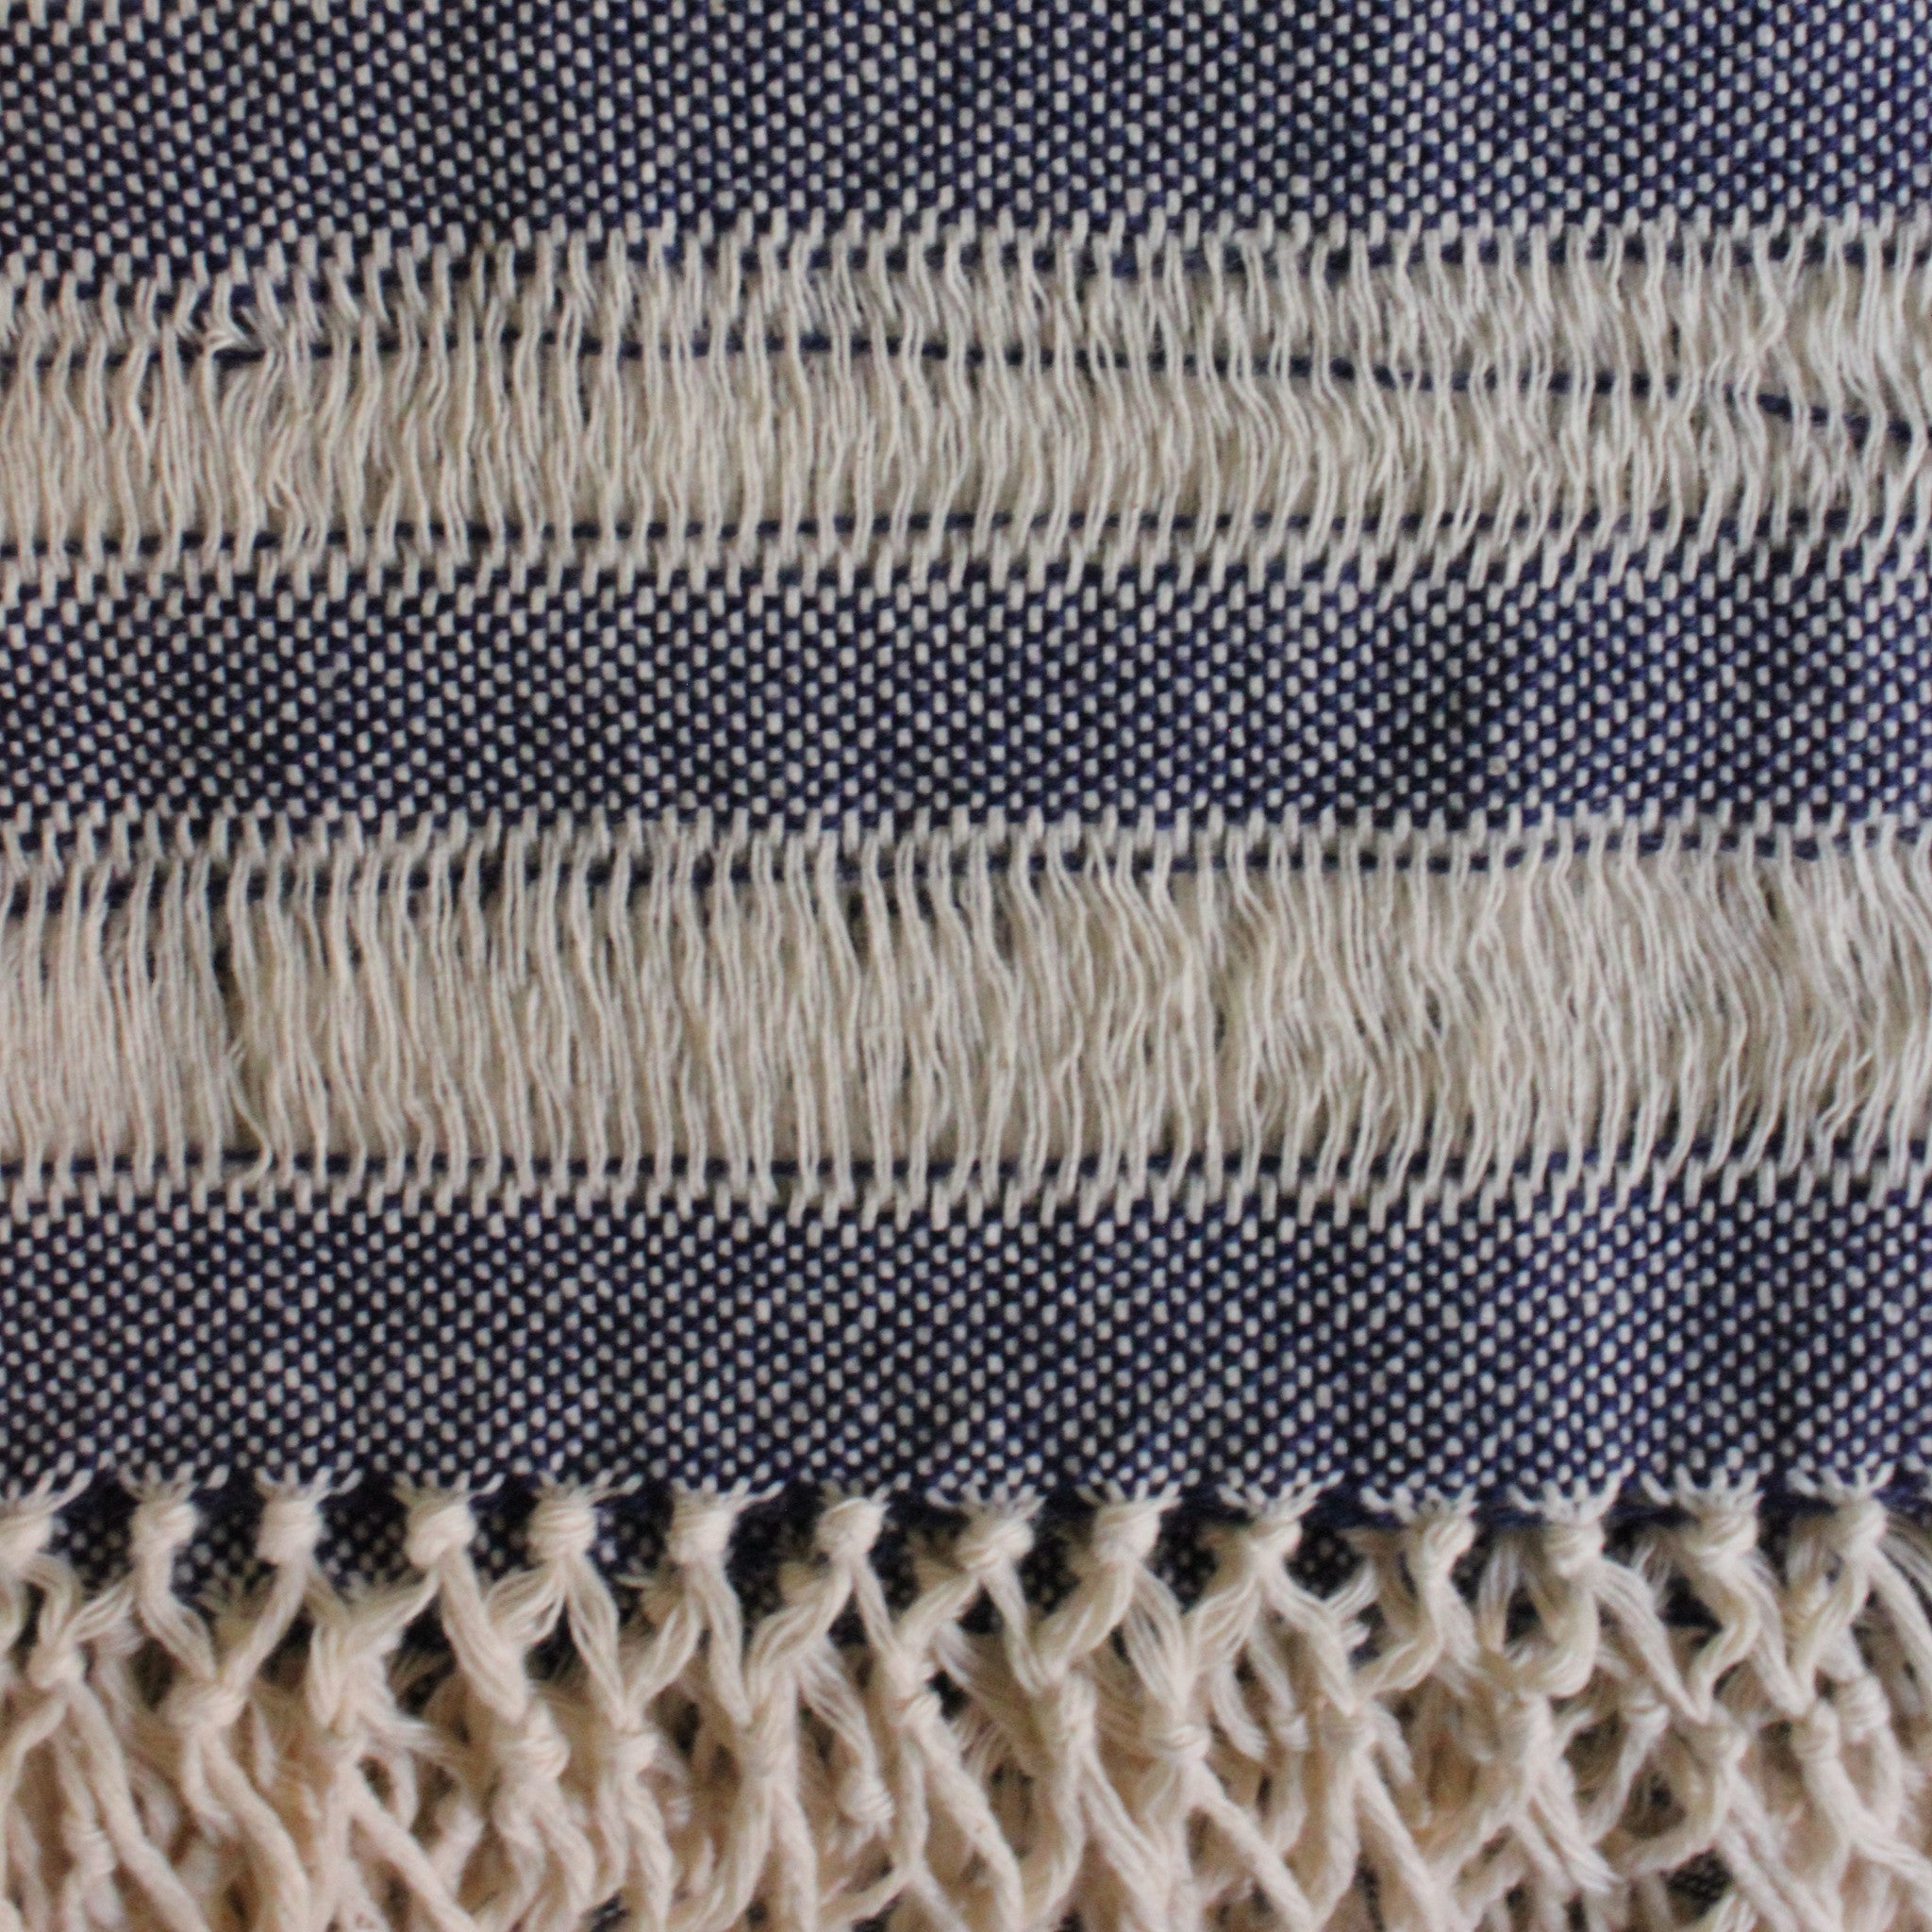 Handwoven cotton scarf handmade in Nicaragua by Living Threads Co. artisans - in Navy Blue